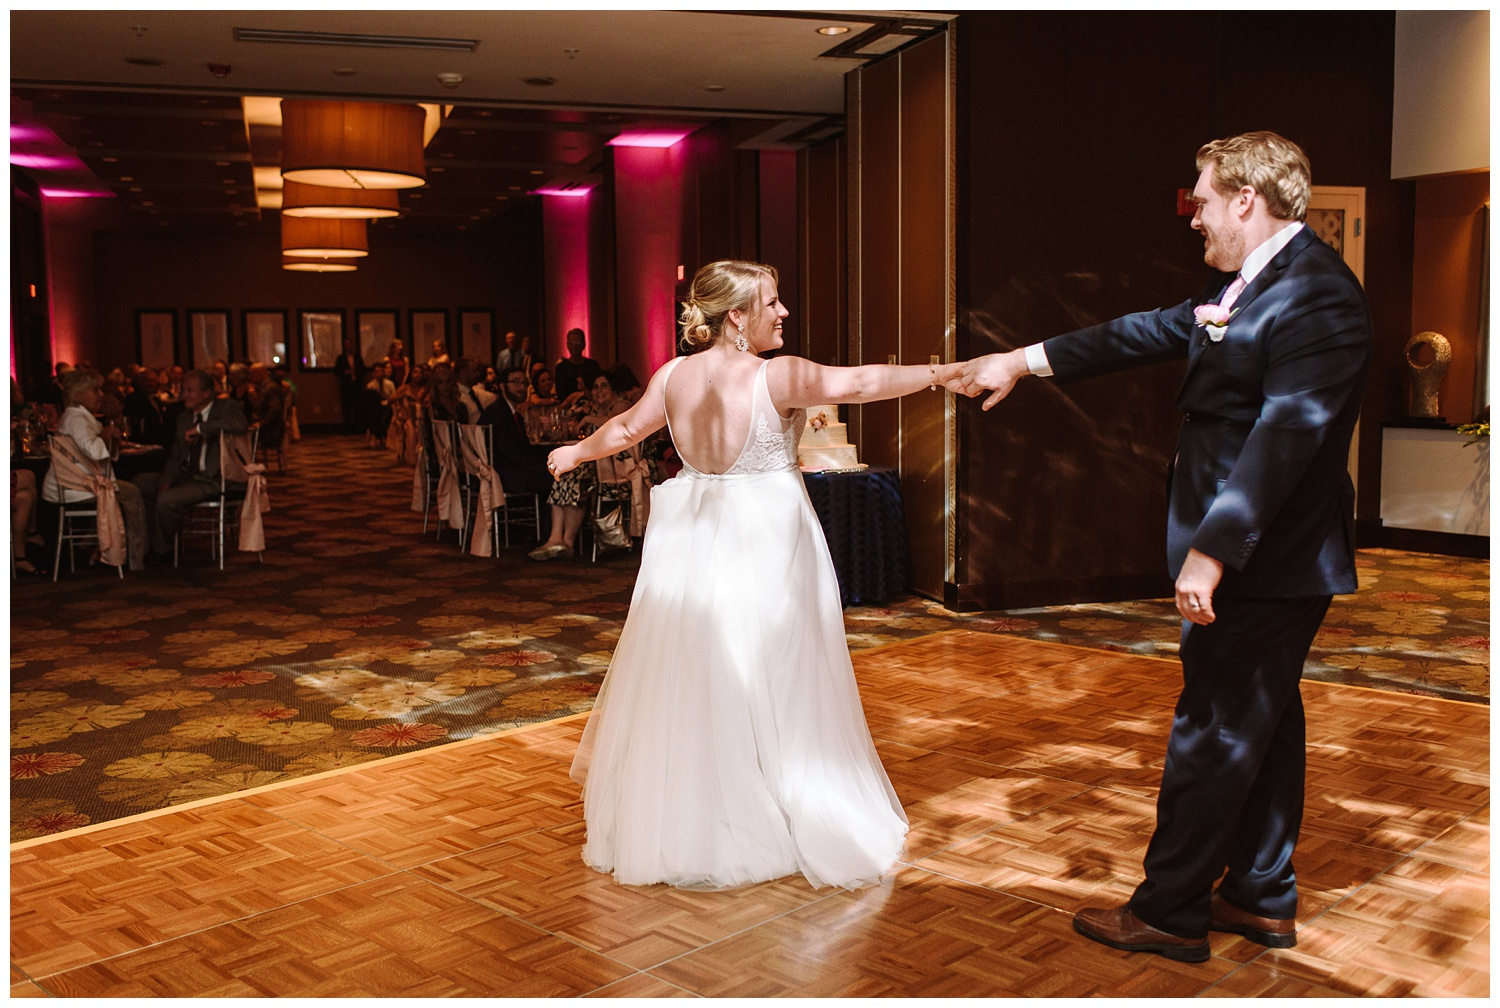 Renaissance Hotel Gillette Stadium Wedding Photographer92.jpg